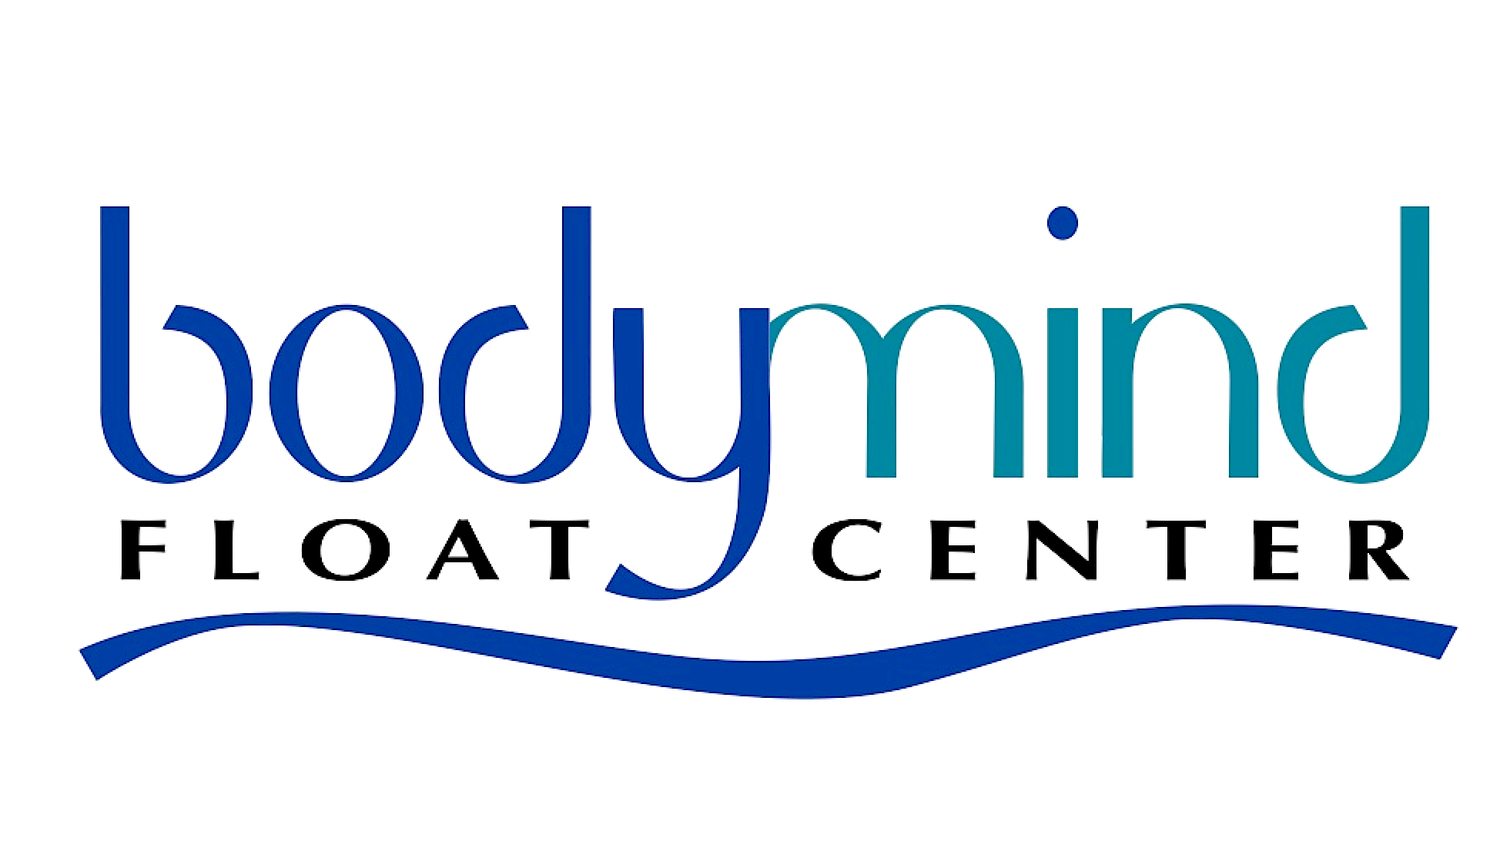 Bodymind Float Center